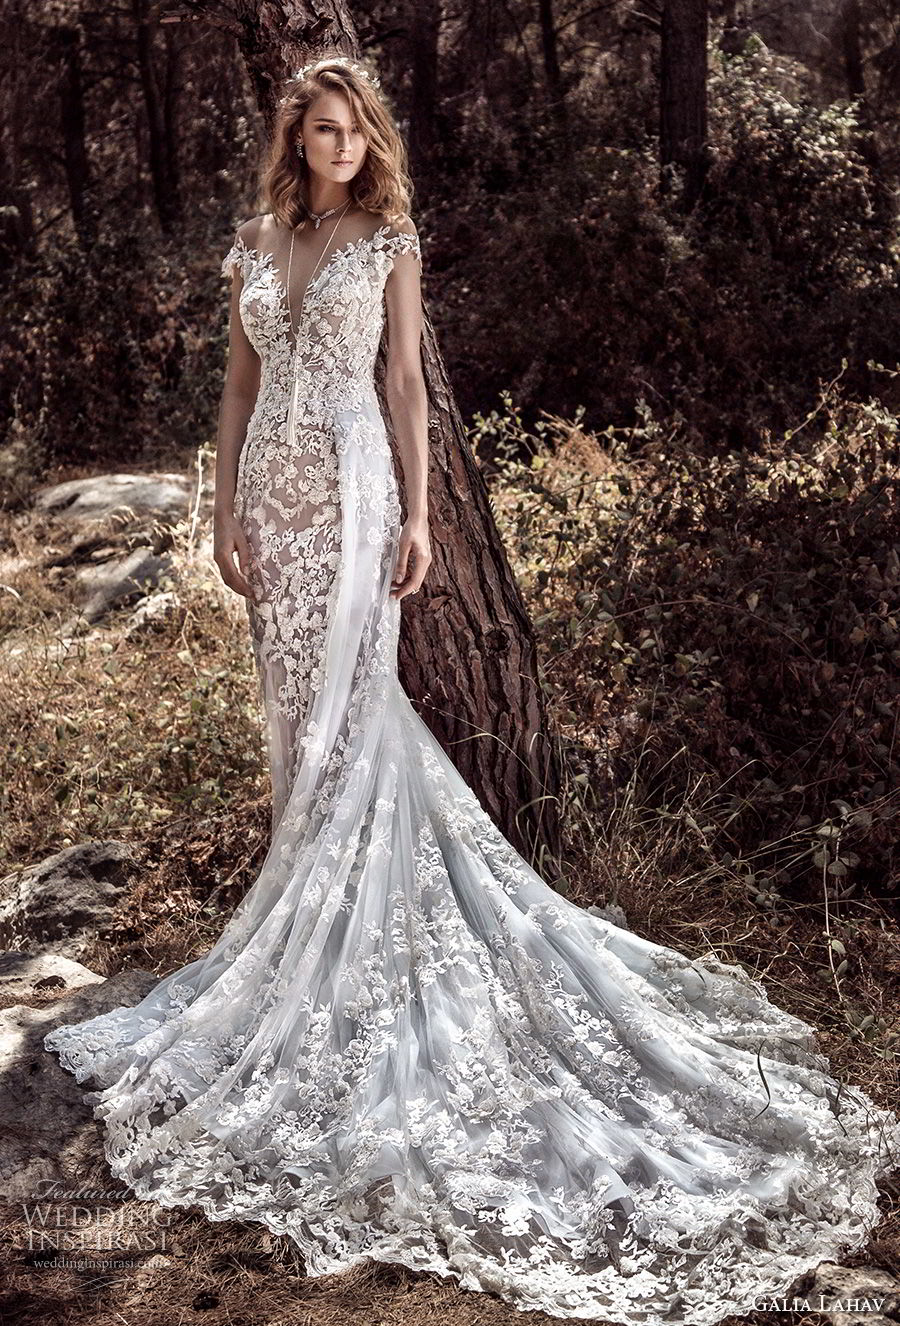 galia lahav gala 4 2018 bridal cap sleeves off the shoulder deep plungng sweetheart neck full embellishment elegant soft a line wedding dress open back chapel train (901) mv